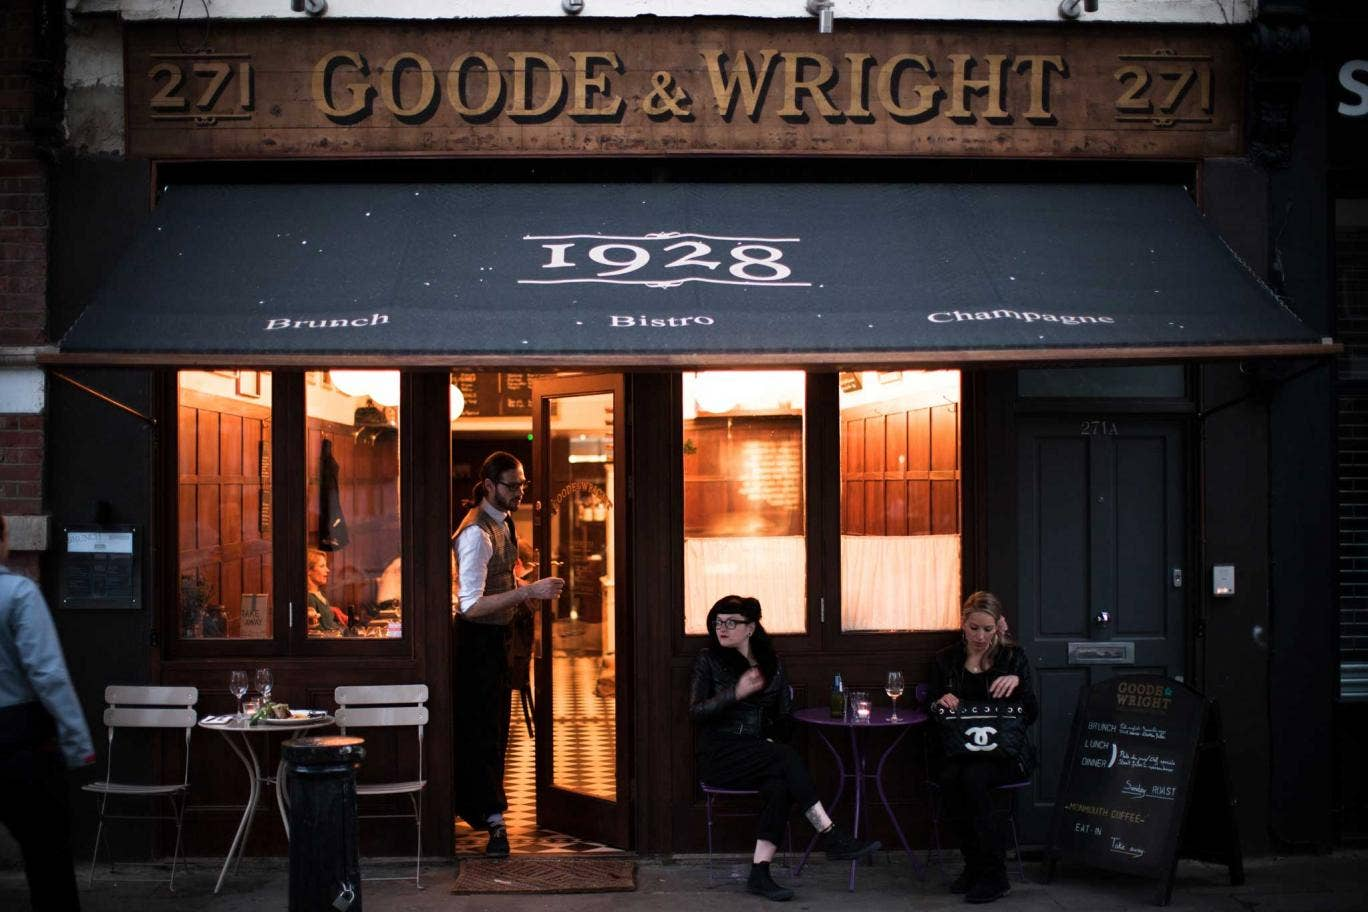 Goode & Wright is starkly designed with wood-panelled walls, dangling globe lights and half-curtained windows